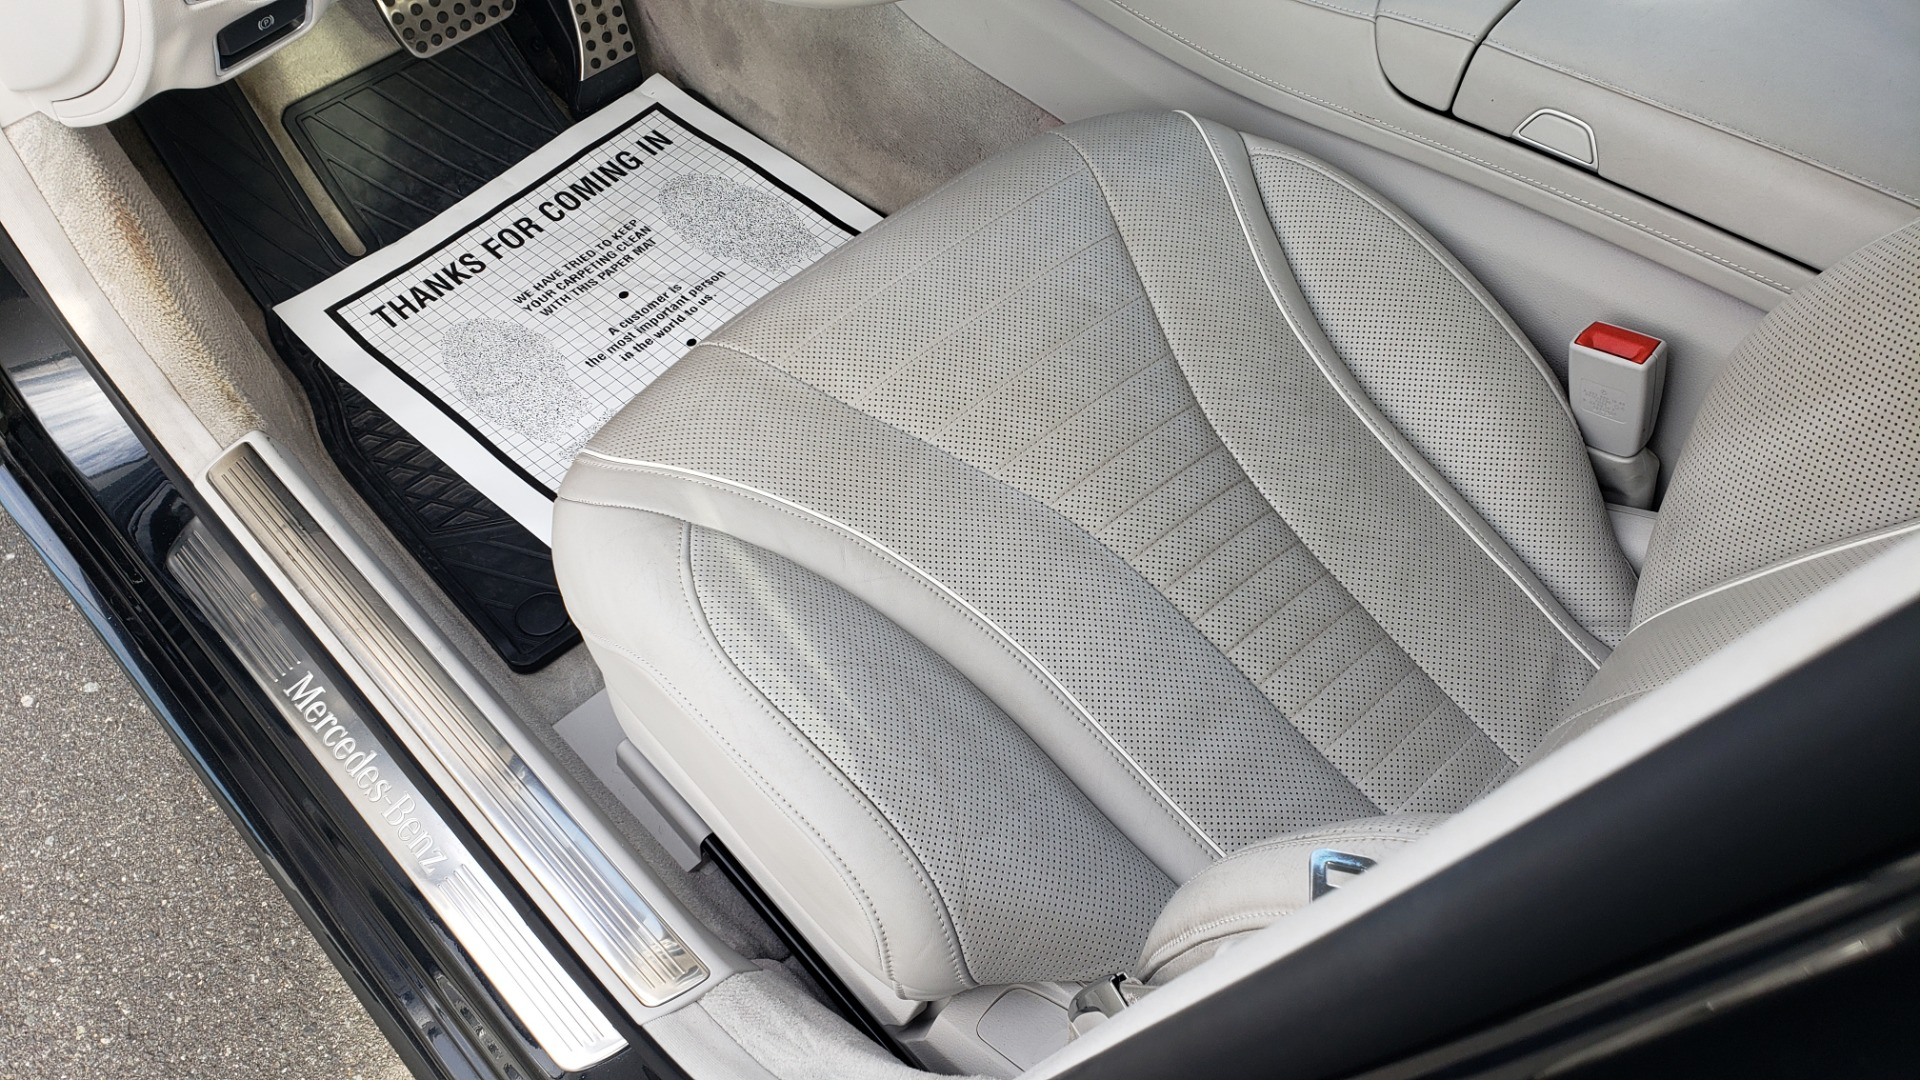 Used 2015 Mercedes-Benz S-CLASS S 550 PREMIUM / SPORT / WARMTH&COMFORT / DRVR ASST / SRND VIEW for sale Sold at Formula Imports in Charlotte NC 28227 39